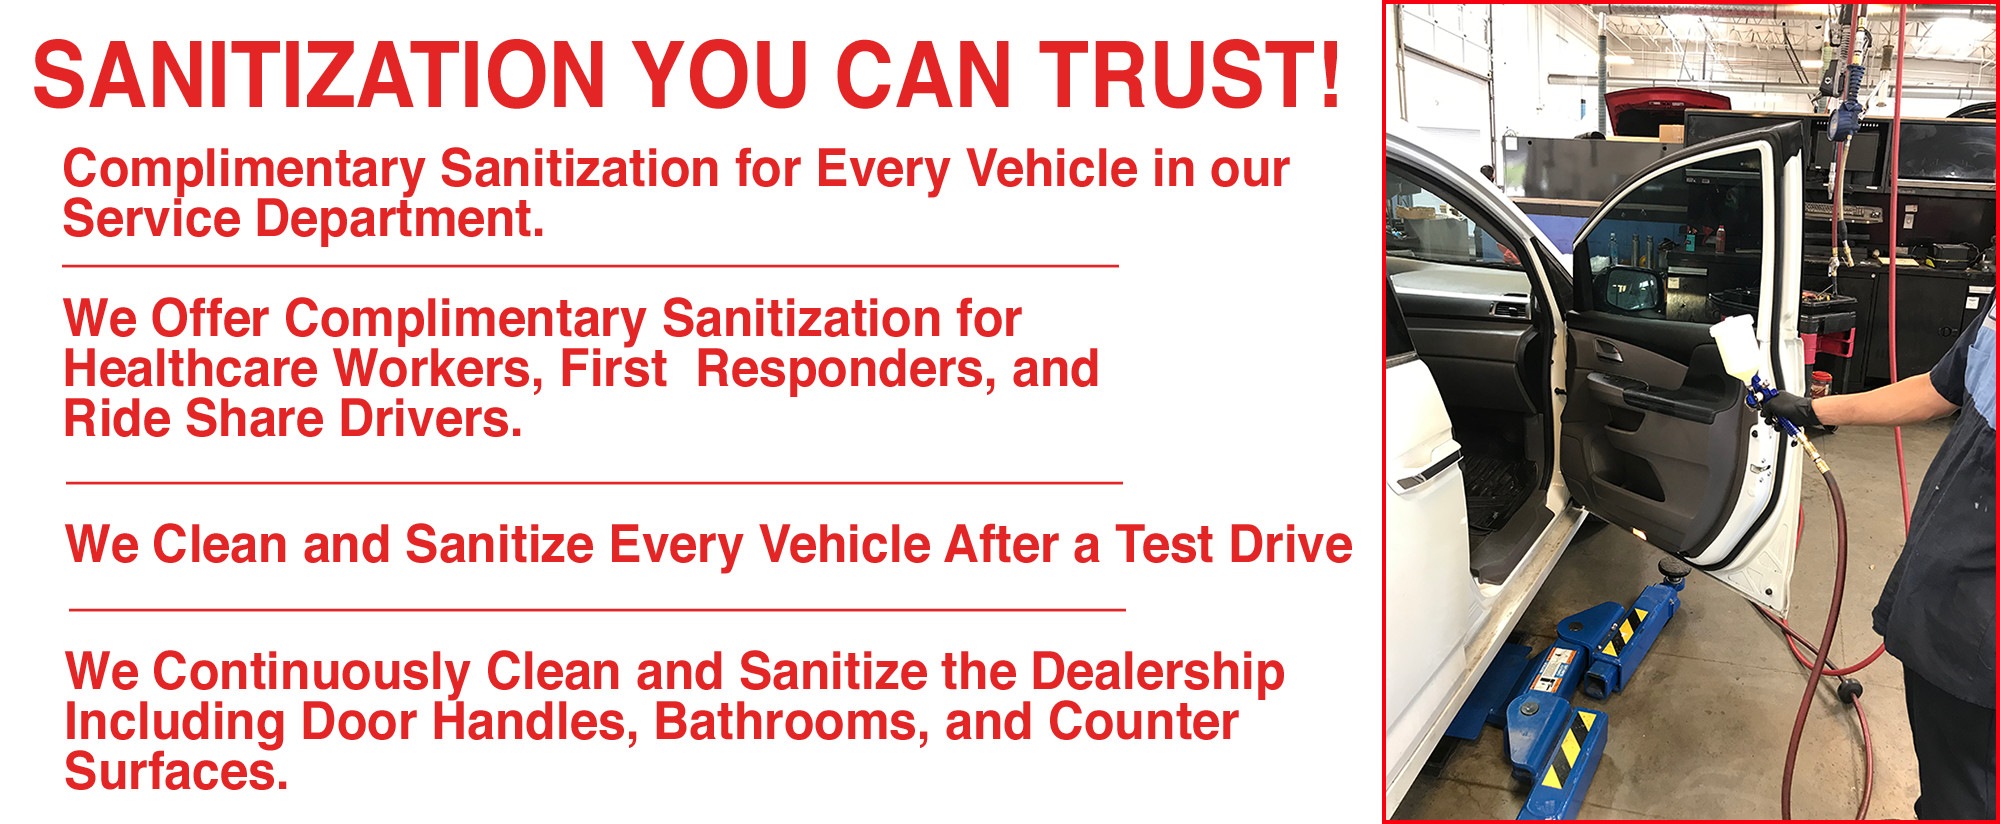 Sanitization you can trust